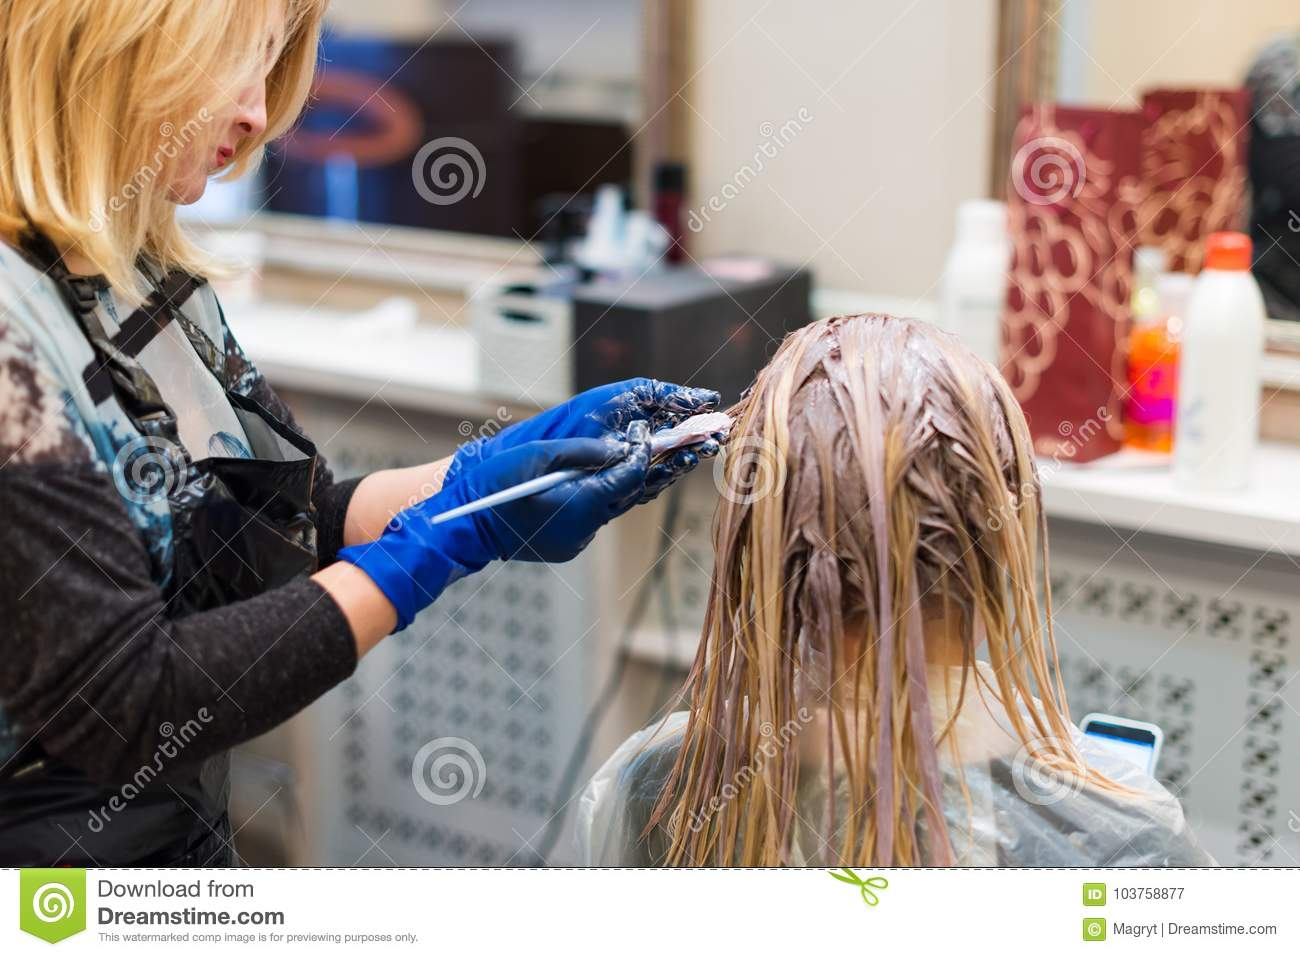 Hairdresser is dying female hair. Hands in glives with brush, coloring in hair salon.